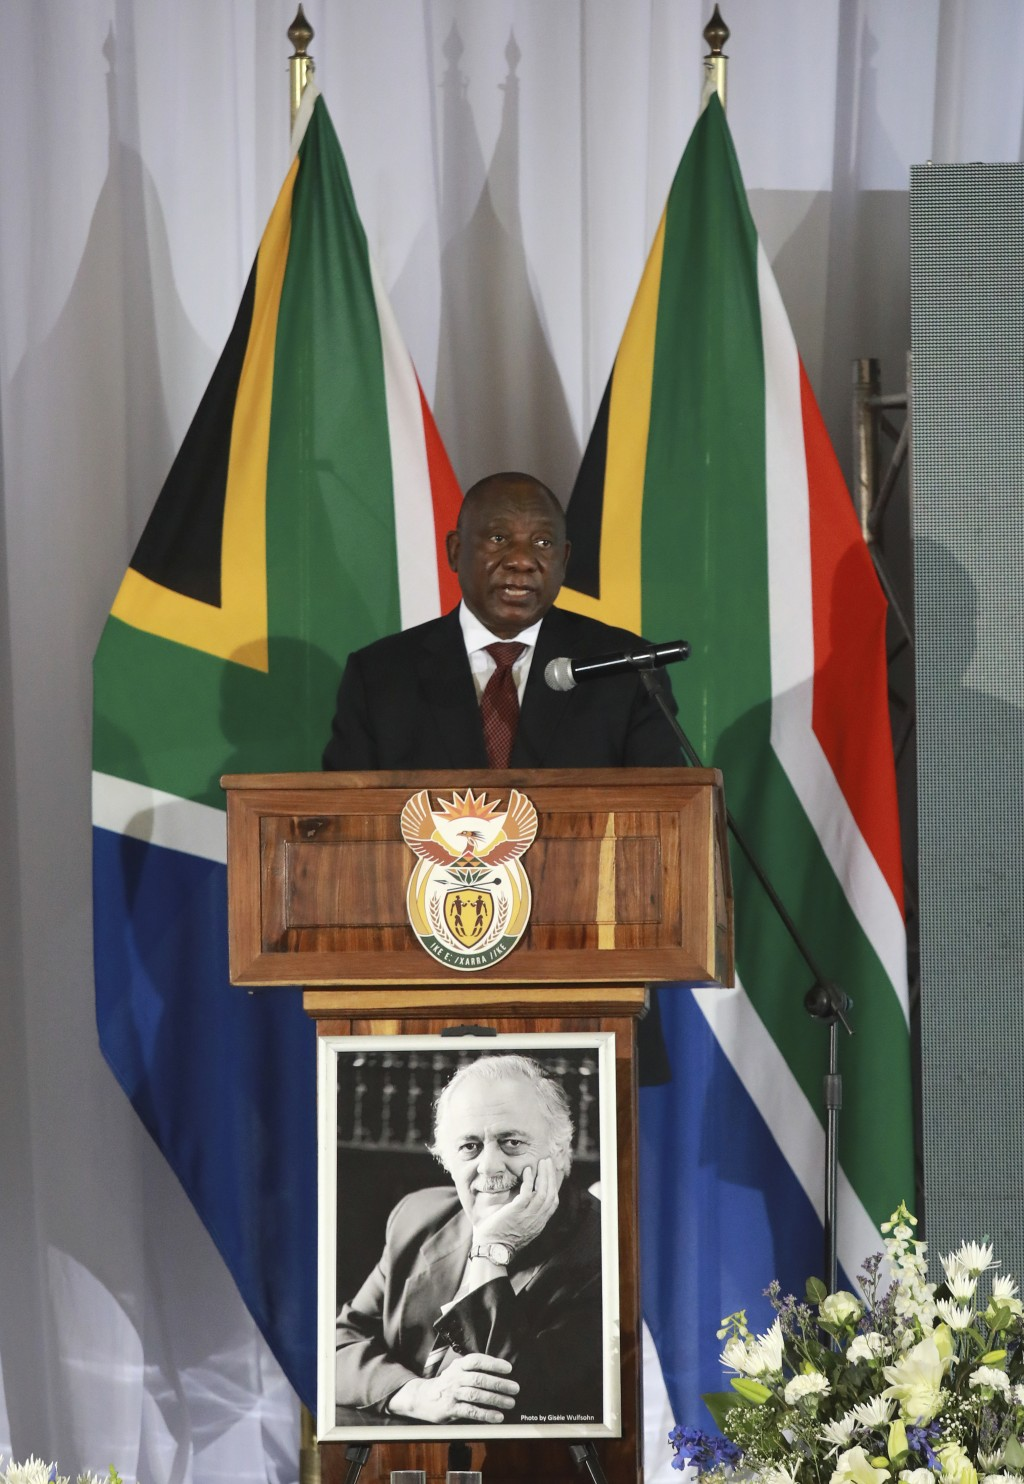 South African President Cyril delivers the eulogy at his official funeral service for George Bizos, portrait foreground, at the Hellenic Cultural Cent...